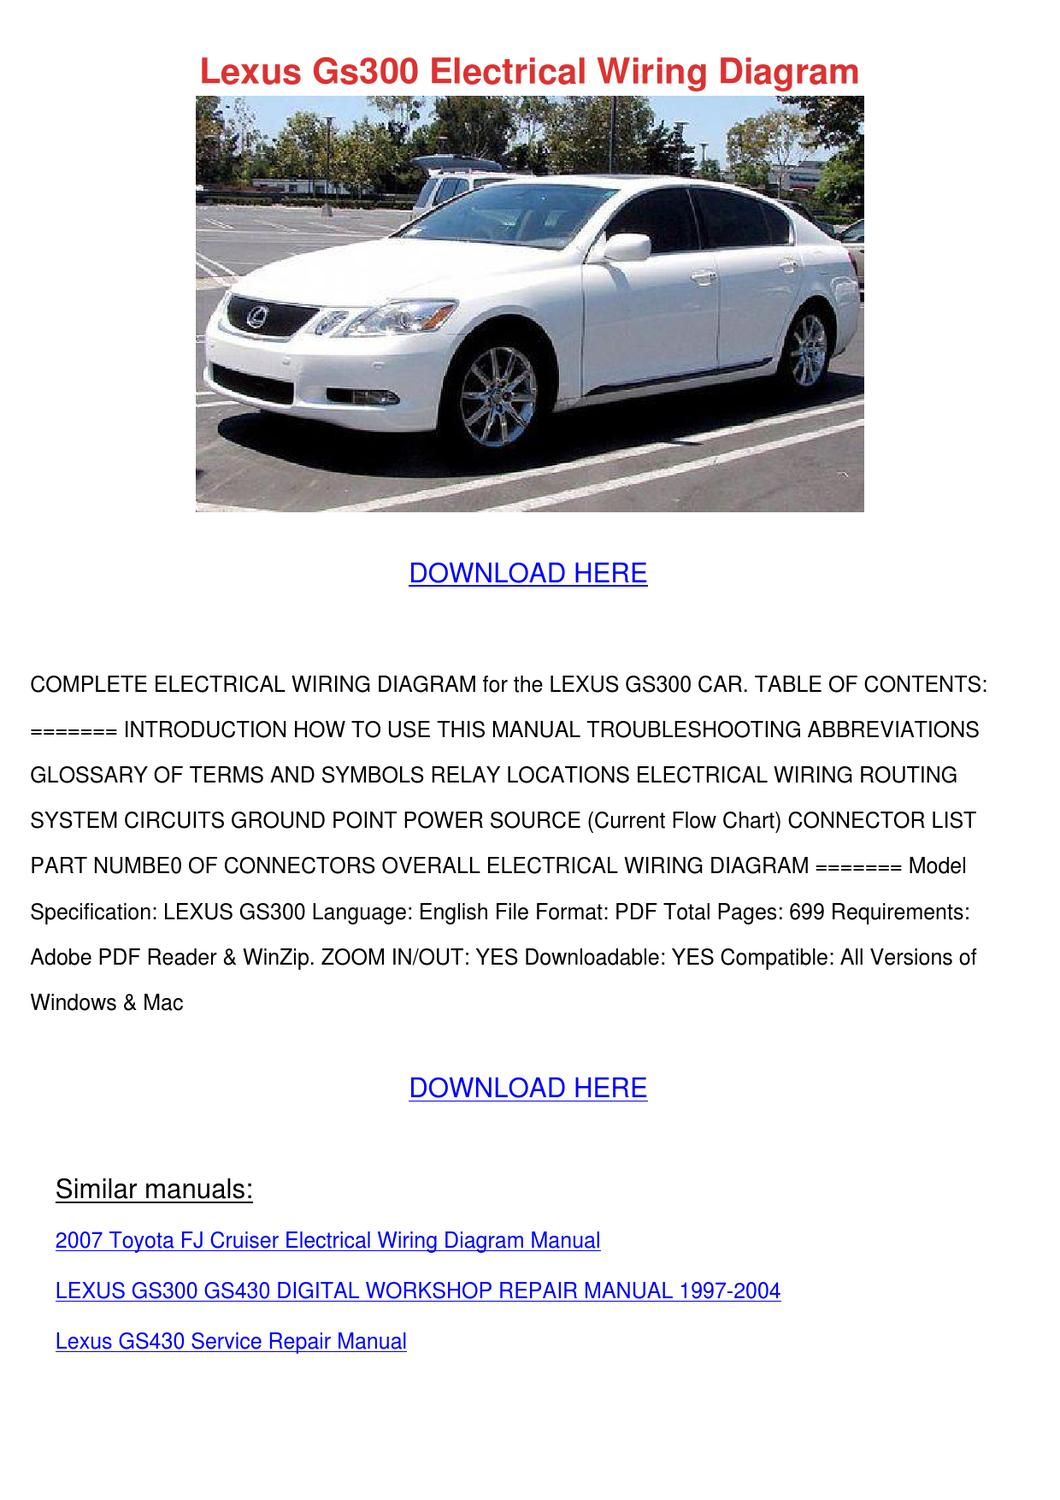 2004 volvo xc90 wiring diagram dodge neon radio lexus gs300 electrical by forrestegan - issuu